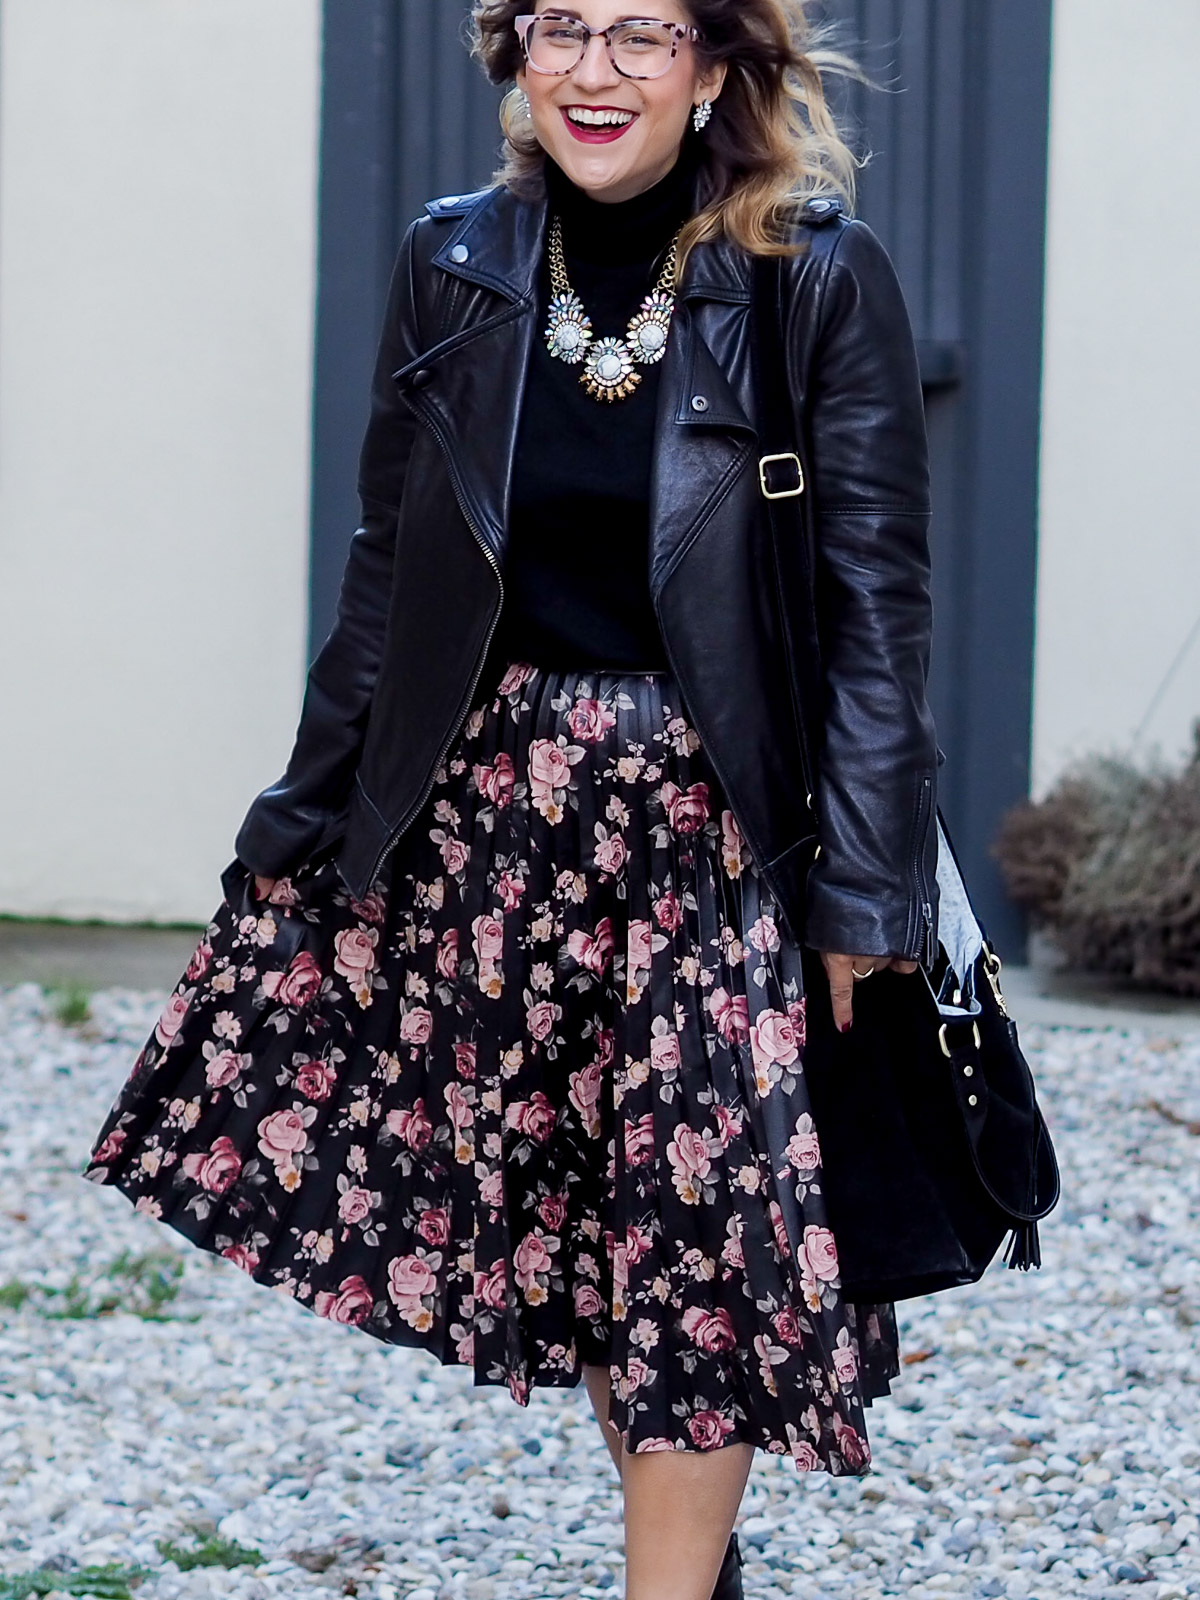 Edgy and chic holiday outfit! A cute pleated floral skirt with a black turtle neck sweater and edgy moto jacket.